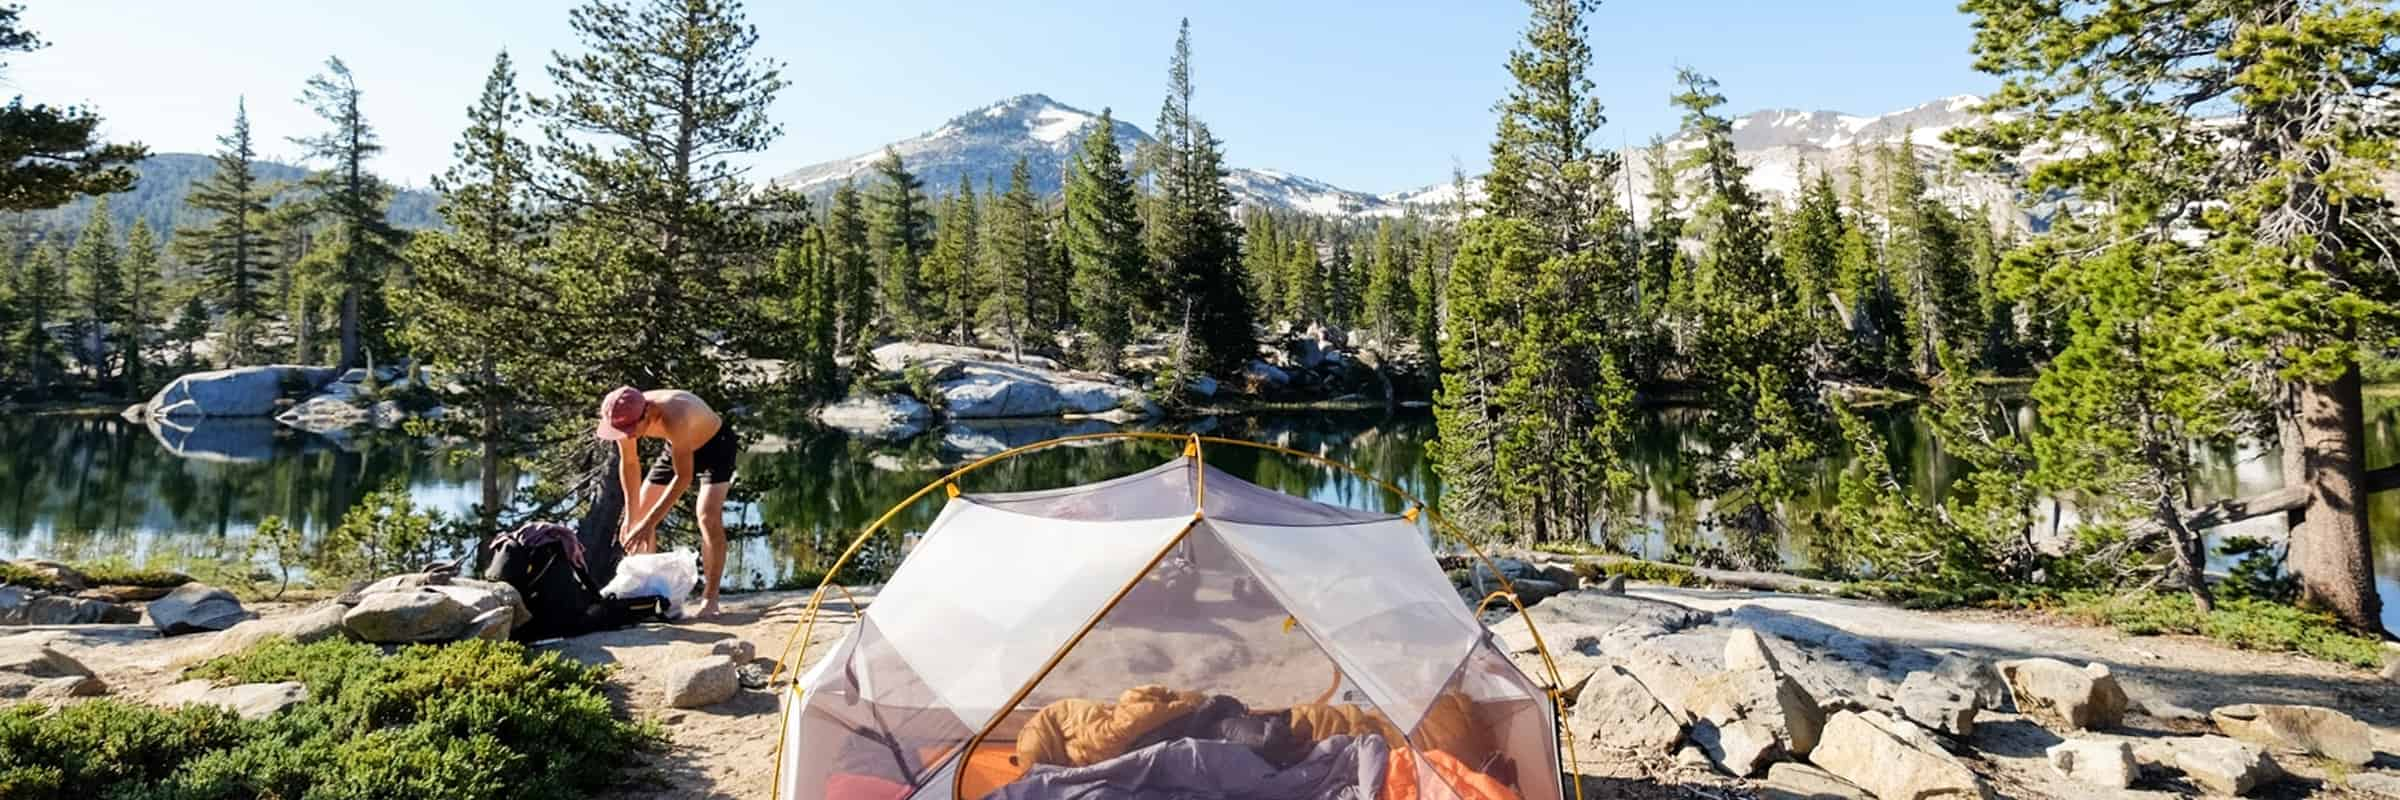 How To Choose The Right Backpacking Tent